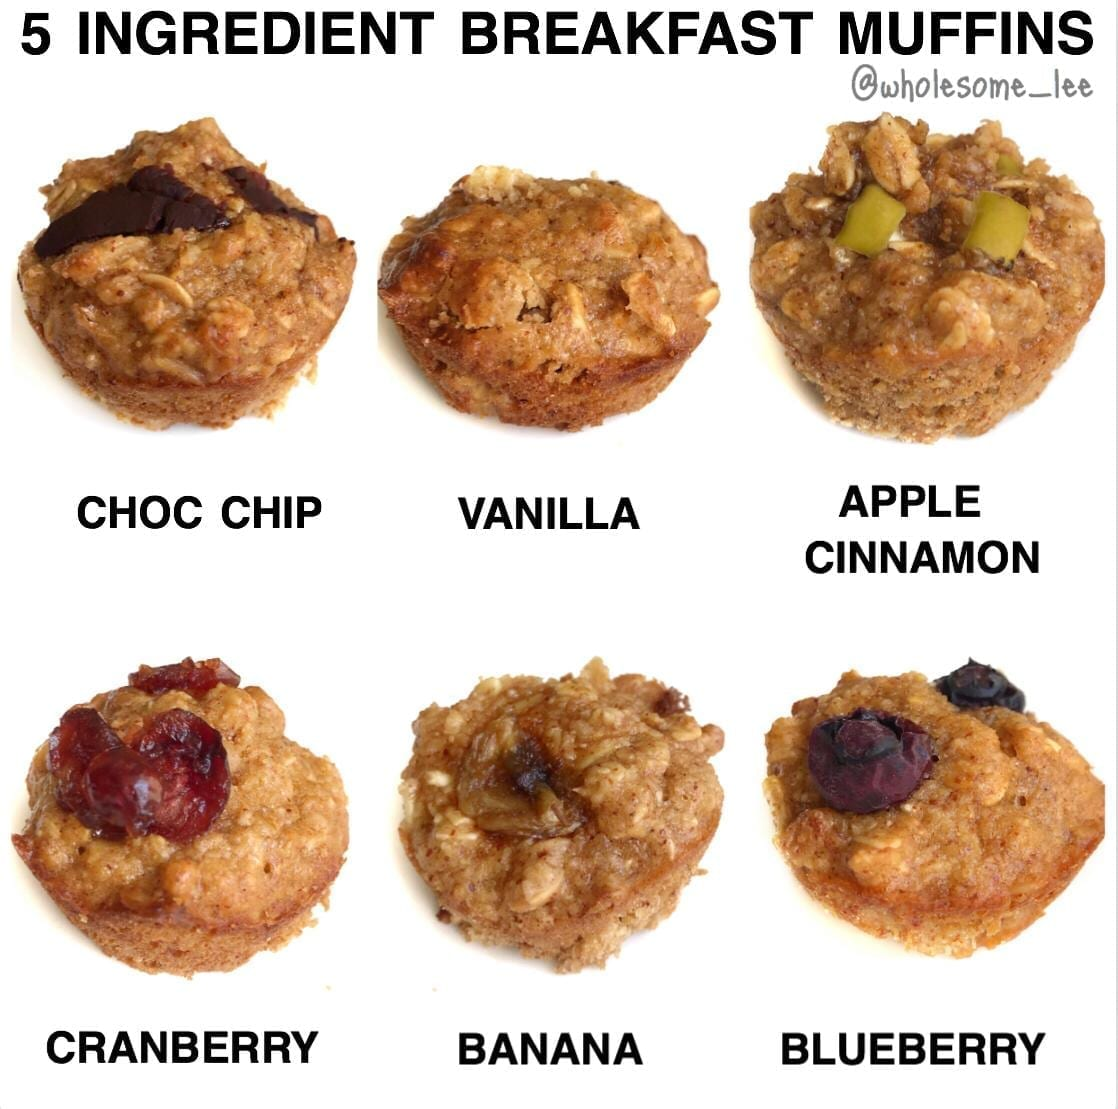 5 Ingredient Breakfast Muffins